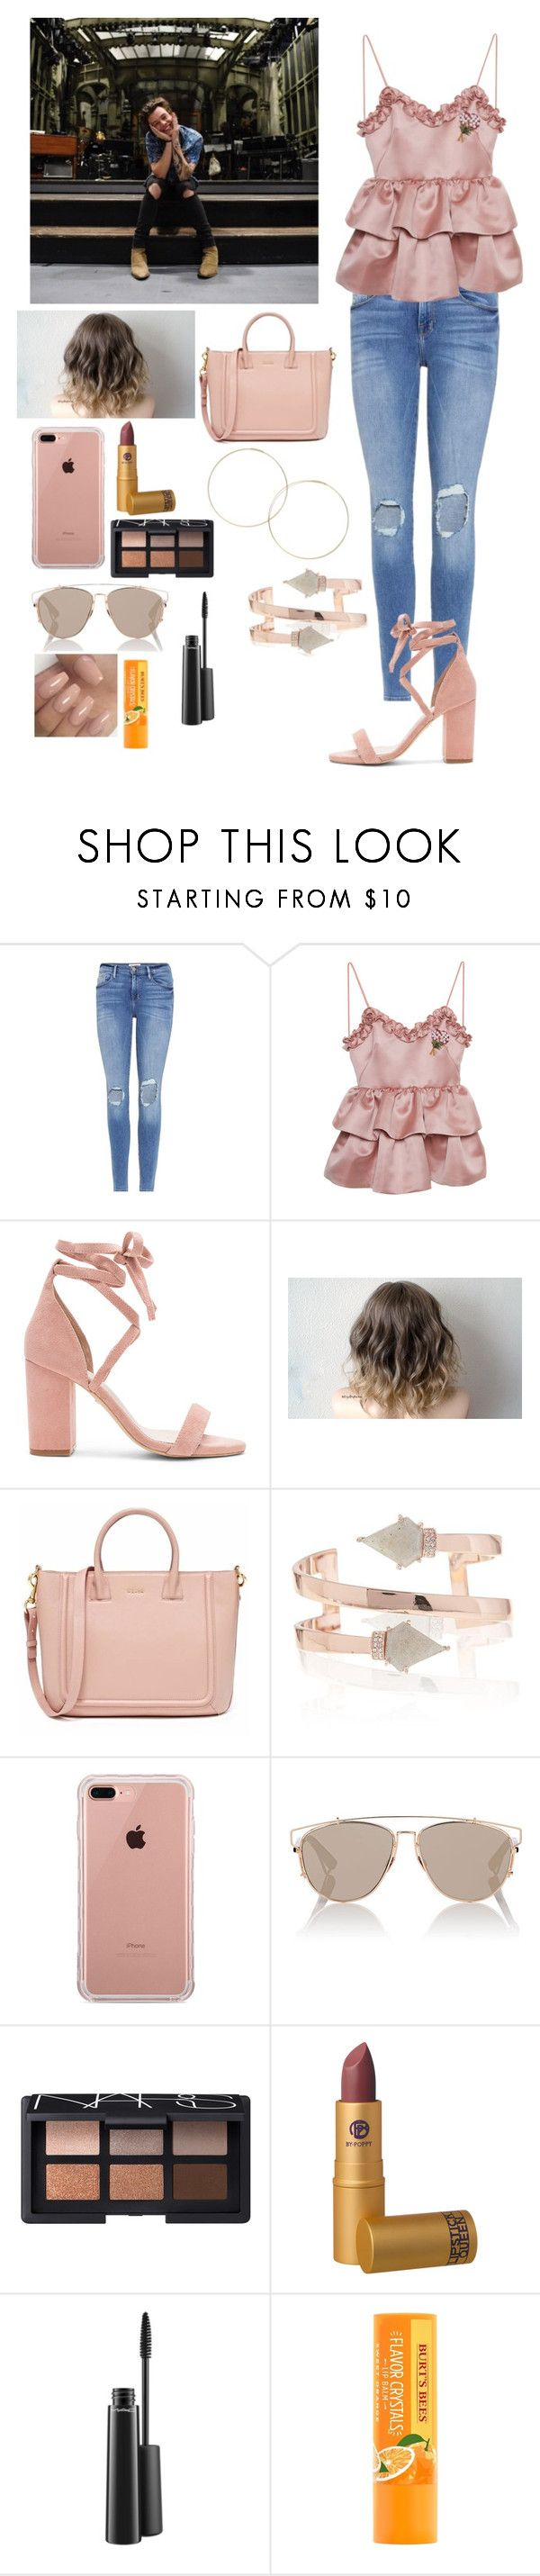 """""""SNL with harry"""" by joelene-garcia ❤ liked on Polyvore featuring Frame, VIVETTA, Raye, Belkin, Christian Dior, NARS Cosmetics, Lipstick Queen and MAC Cosmetics"""